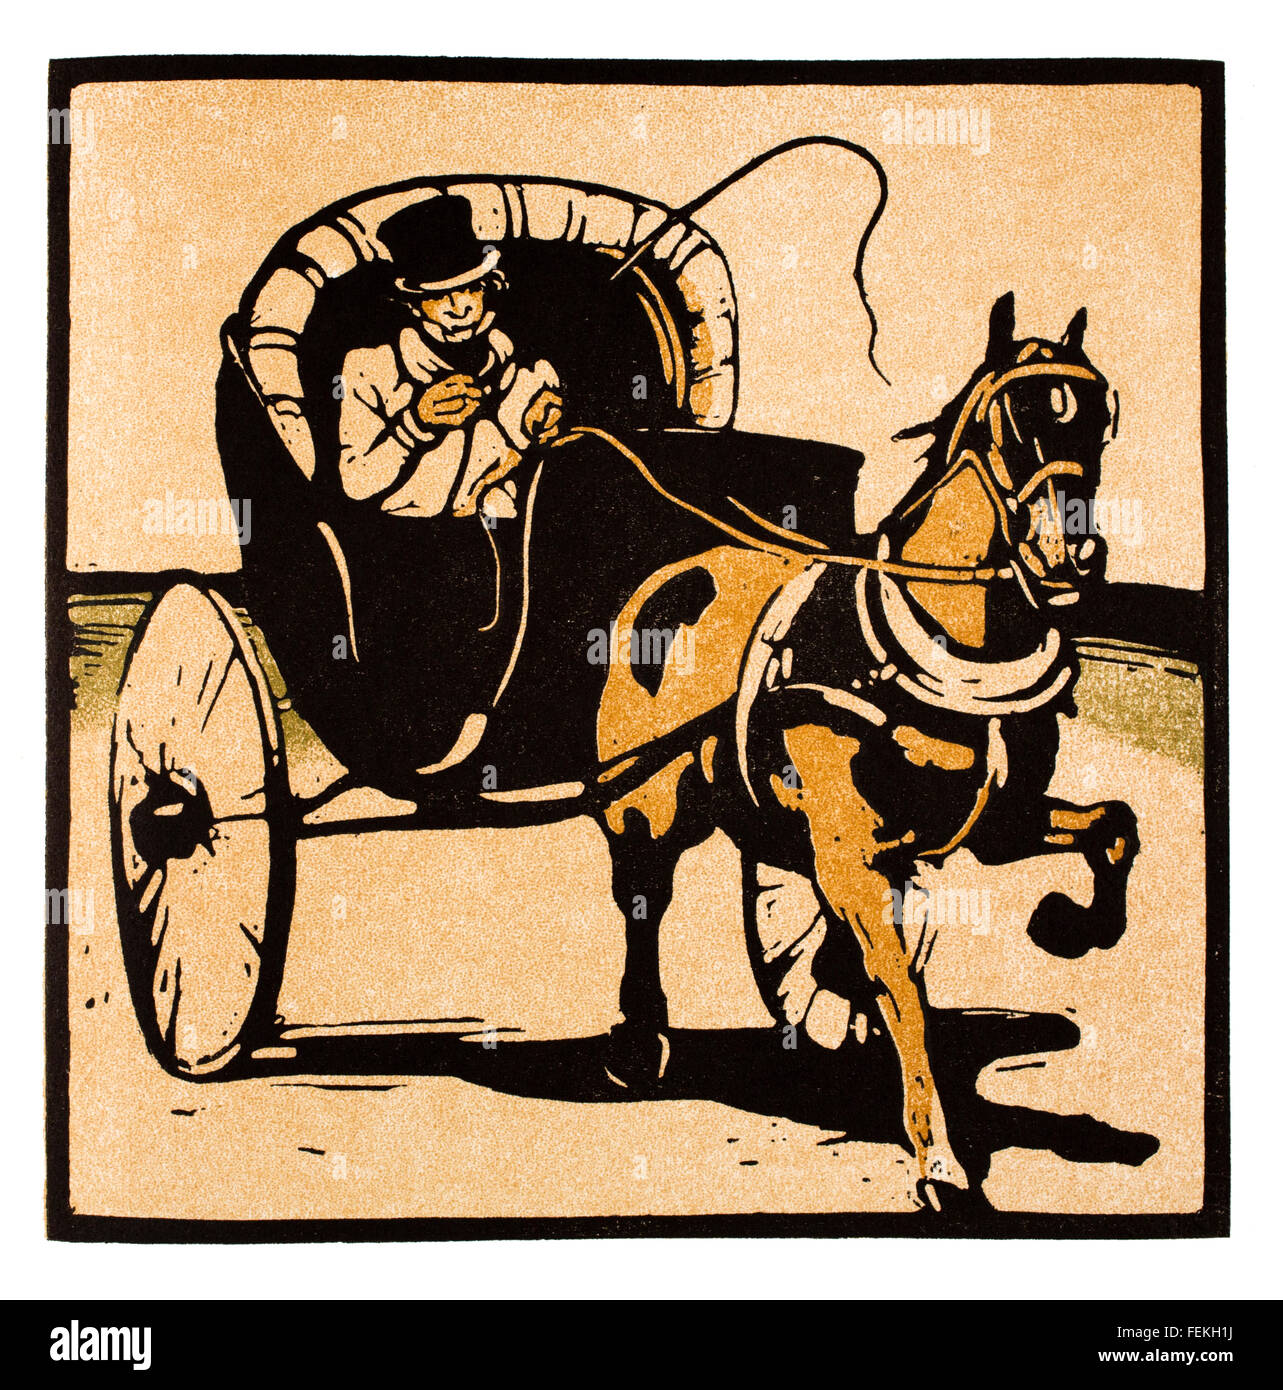 The Cabriolet, woodcut print by artist William Nicholson, colour Illustration from 1897 The Studio Magazine competition - Stock Image